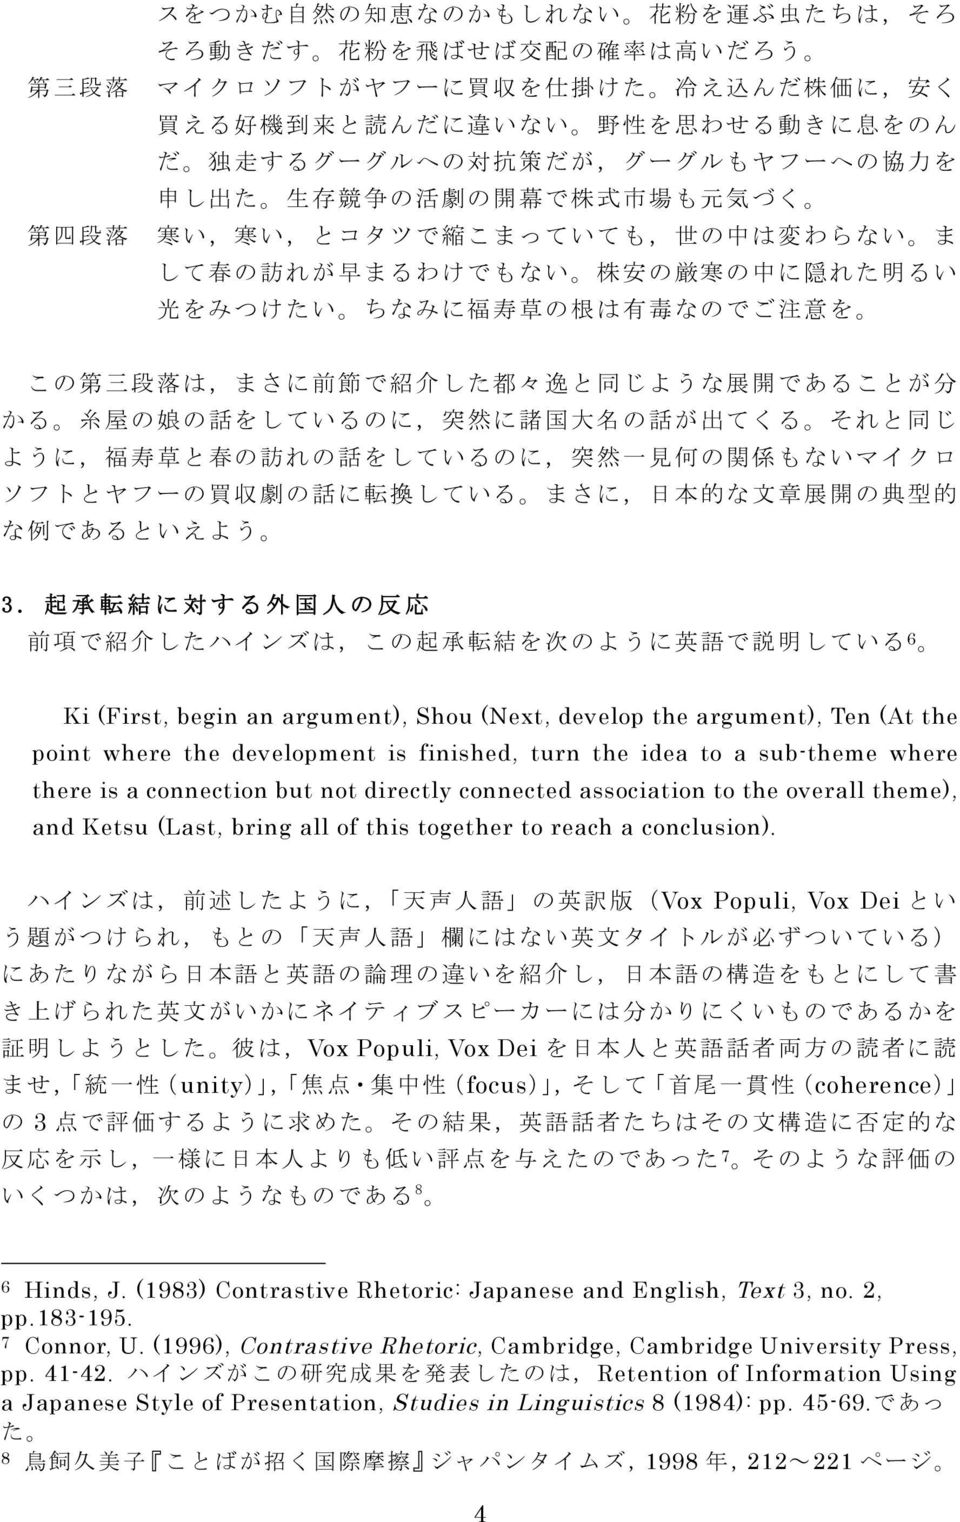 Vox Populi, Vox Dei Vox Populi, Vox Dei unity focus coherence 3 7 6 Hinds, J. (1983) Contrastive Rhetoric: Japanese and English, Text 3, no. 2, pp.183-195. 7 Connor, U.